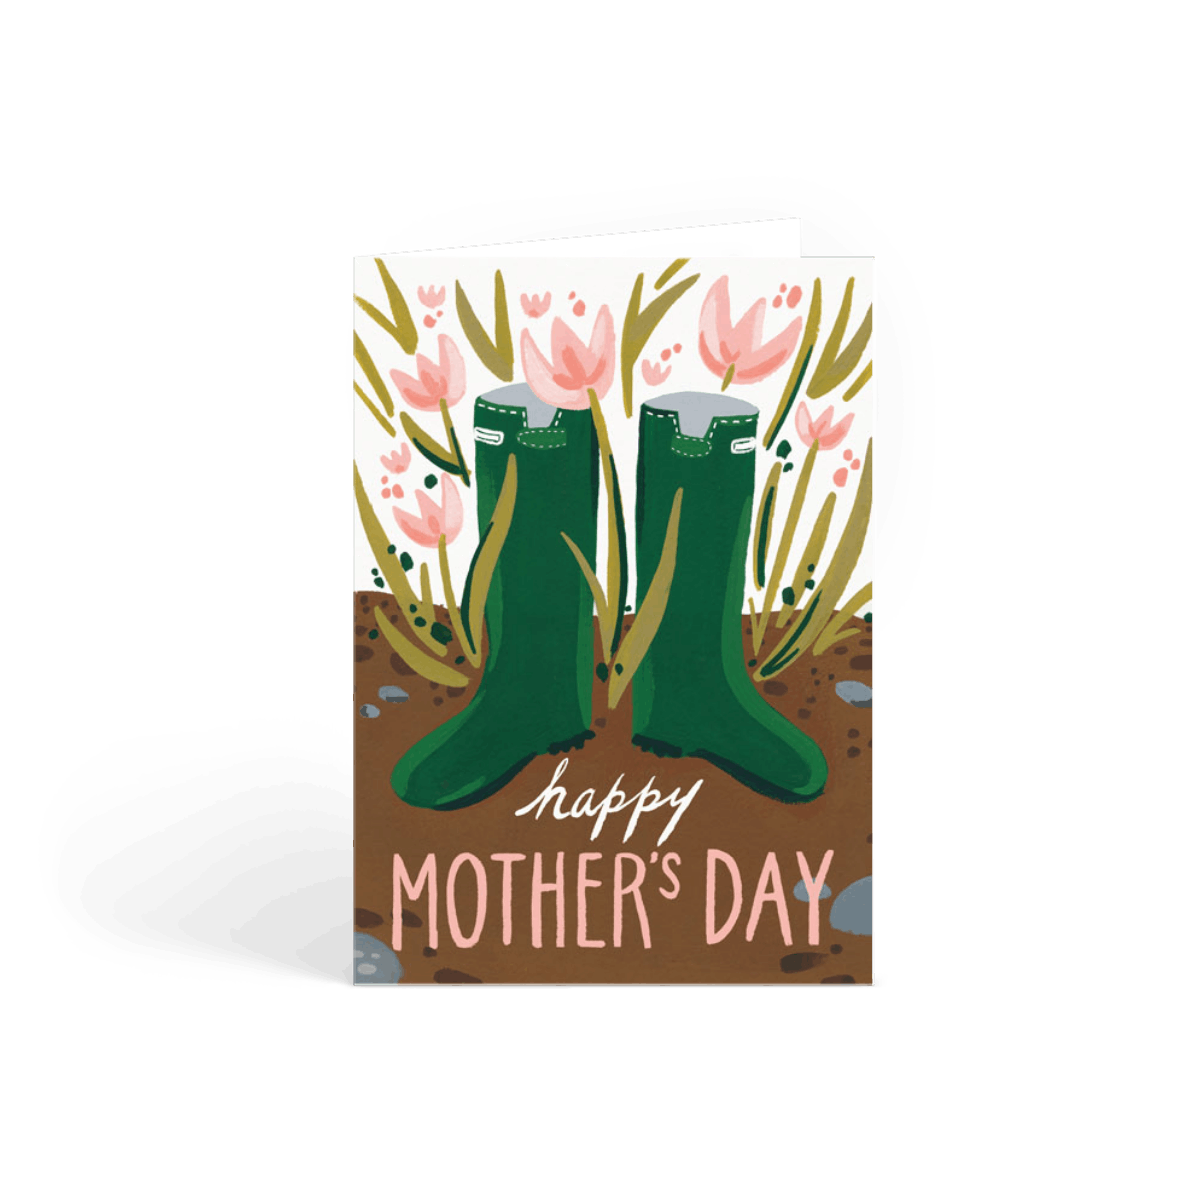 Https%3a%2f%2fwww.papier.com%2fproduct image%2f19984%2f2%2fmother s day wellies 5113 avant 1488218270.png?ixlib=rb 1.1